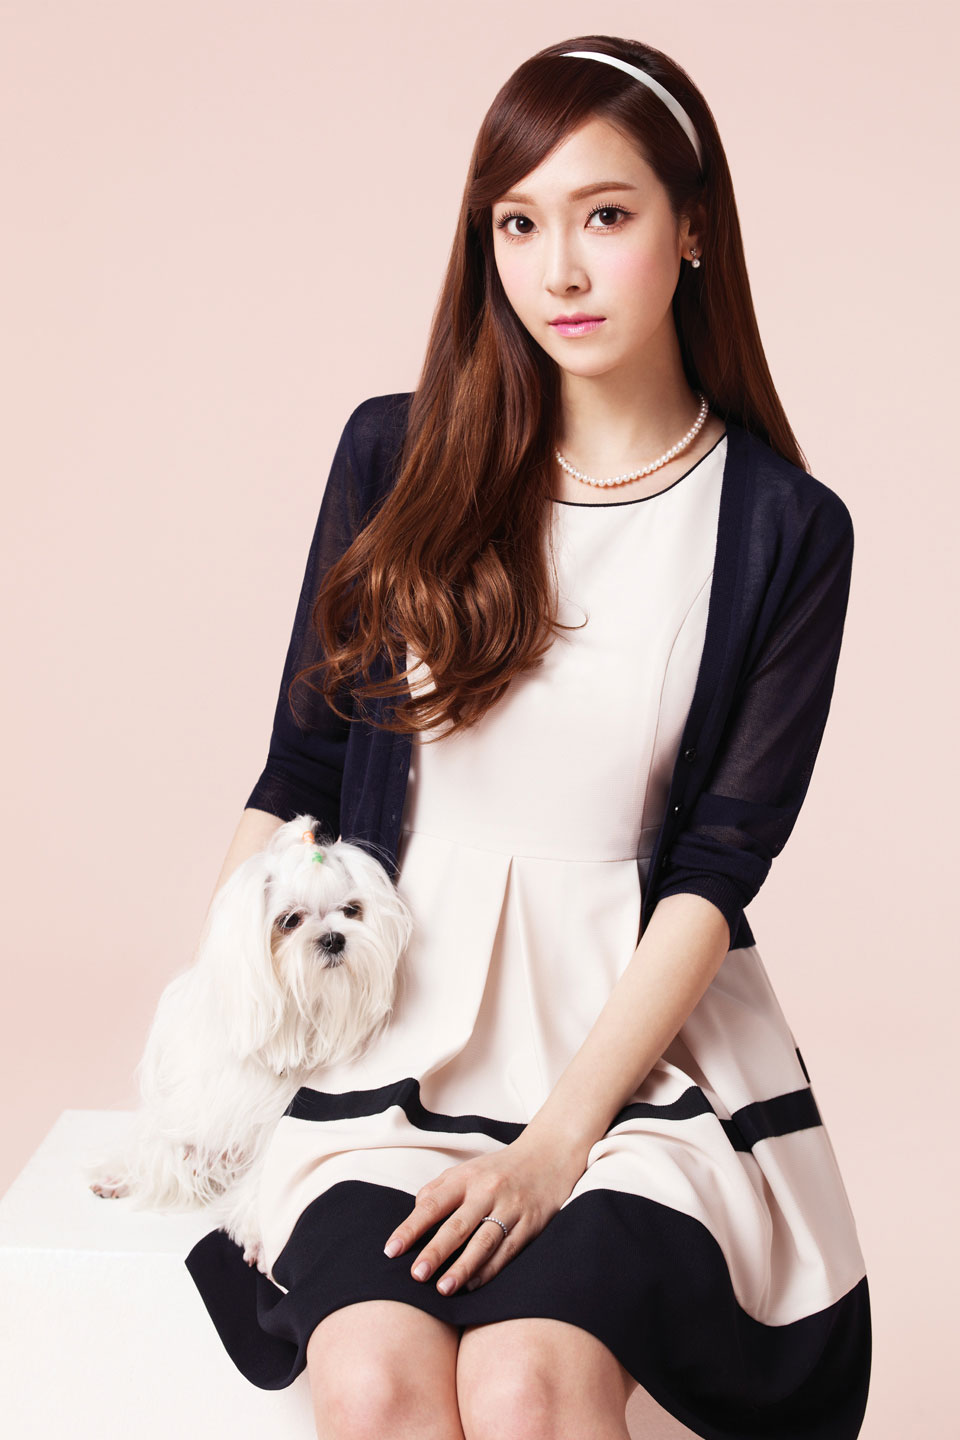 Jessica Girls Generation Fashion Brand